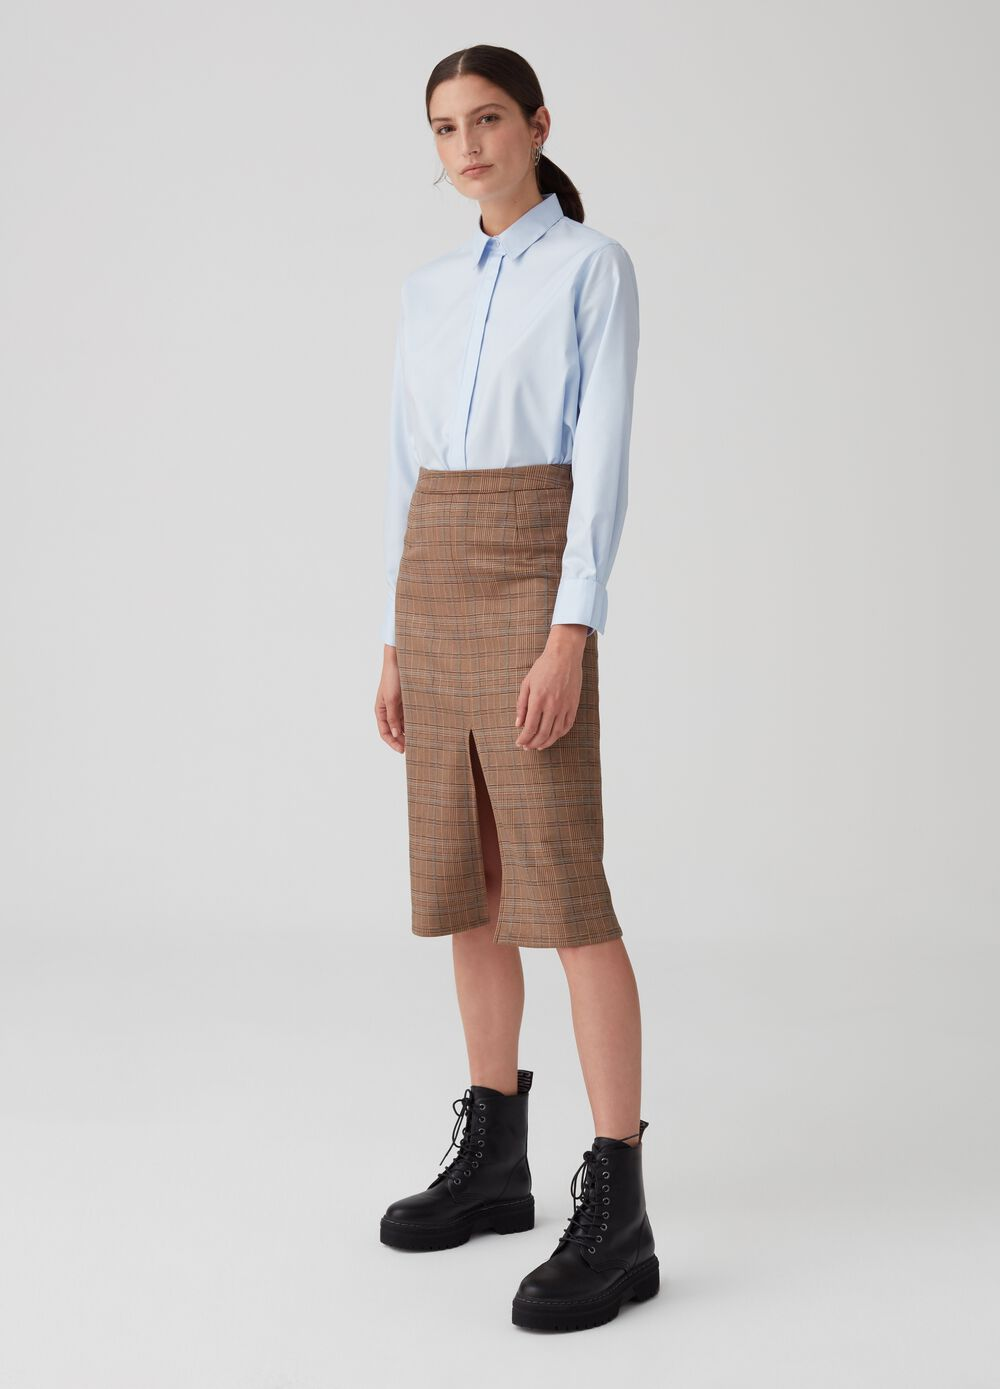 Suede-effect skirt with check pattern